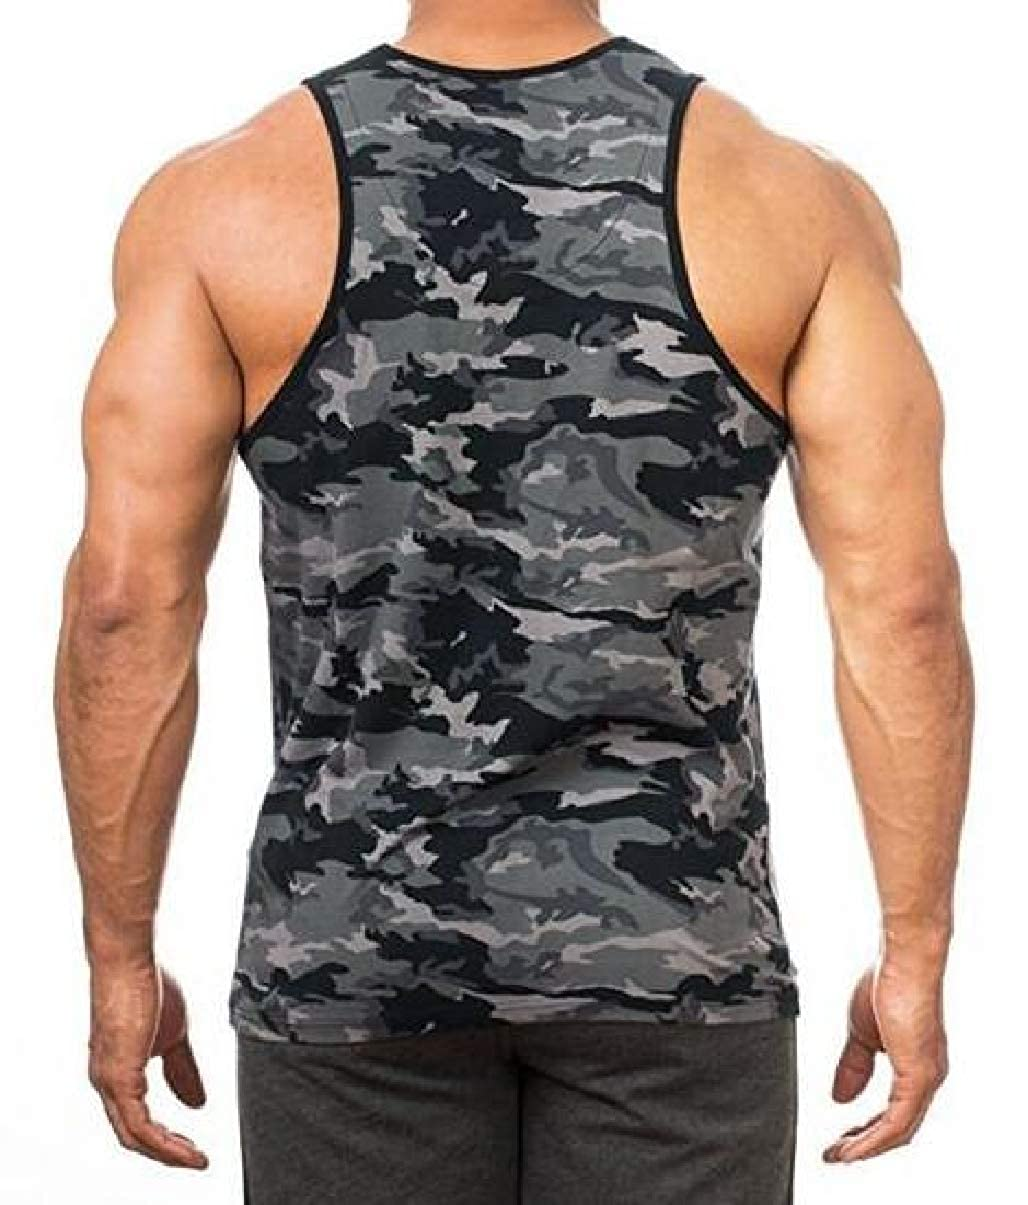 Xswsy XG Mens Sleeveless Fitness Muscle Bodybuilding Camouflage Tank Tops